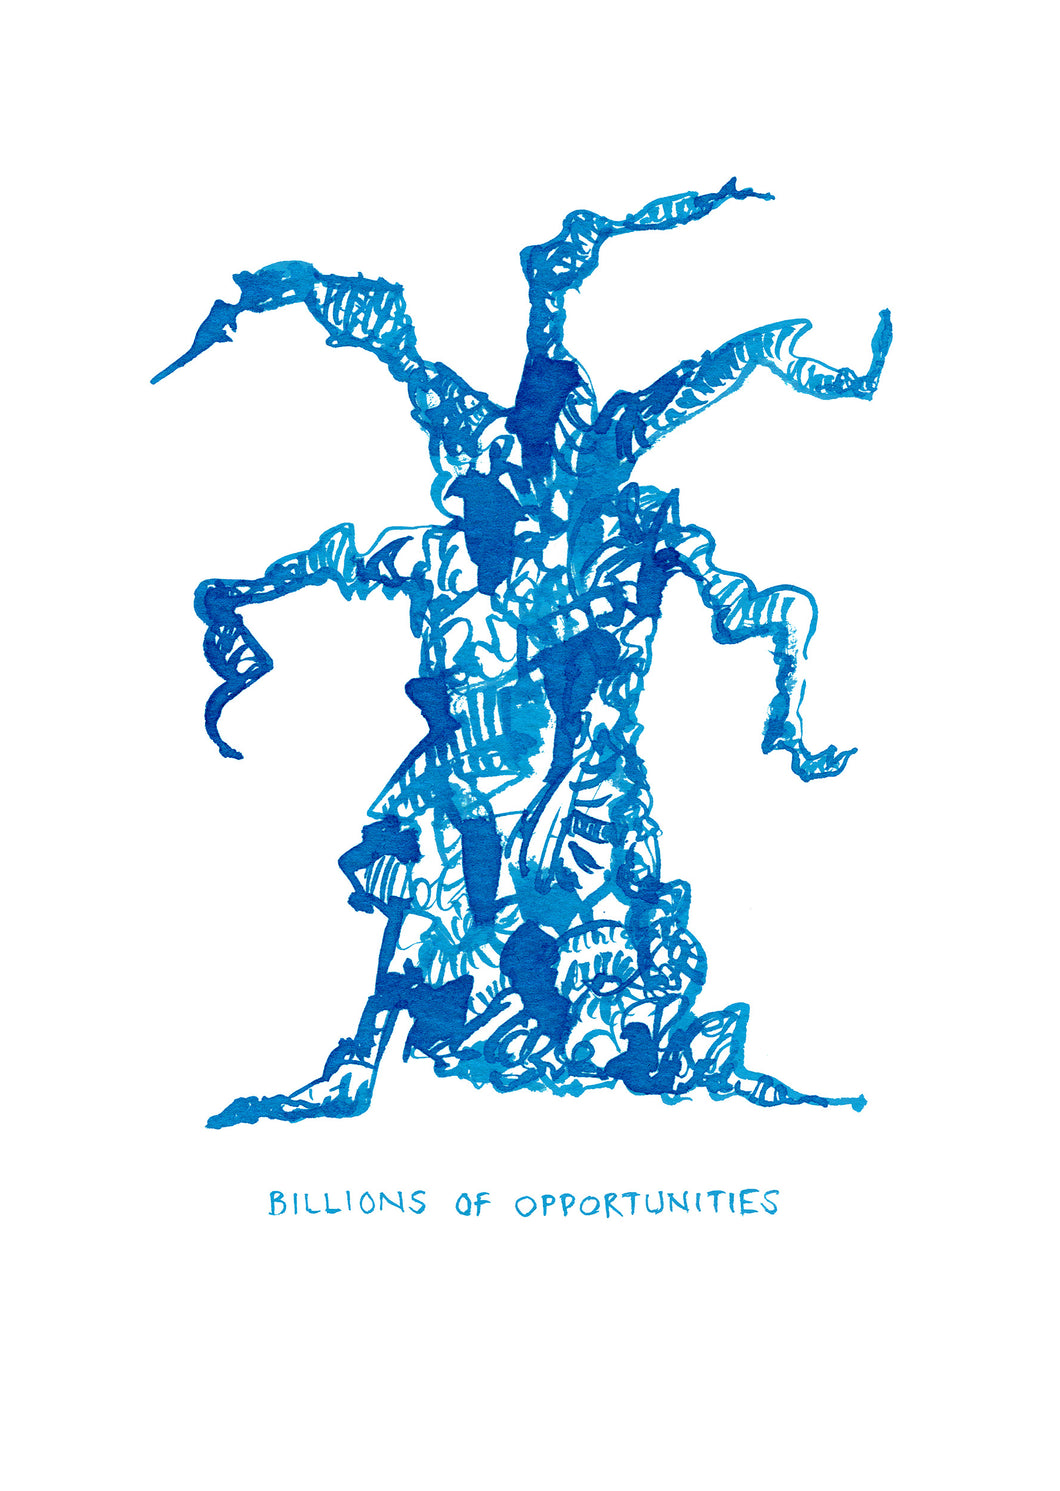 13. Billions of opportunities